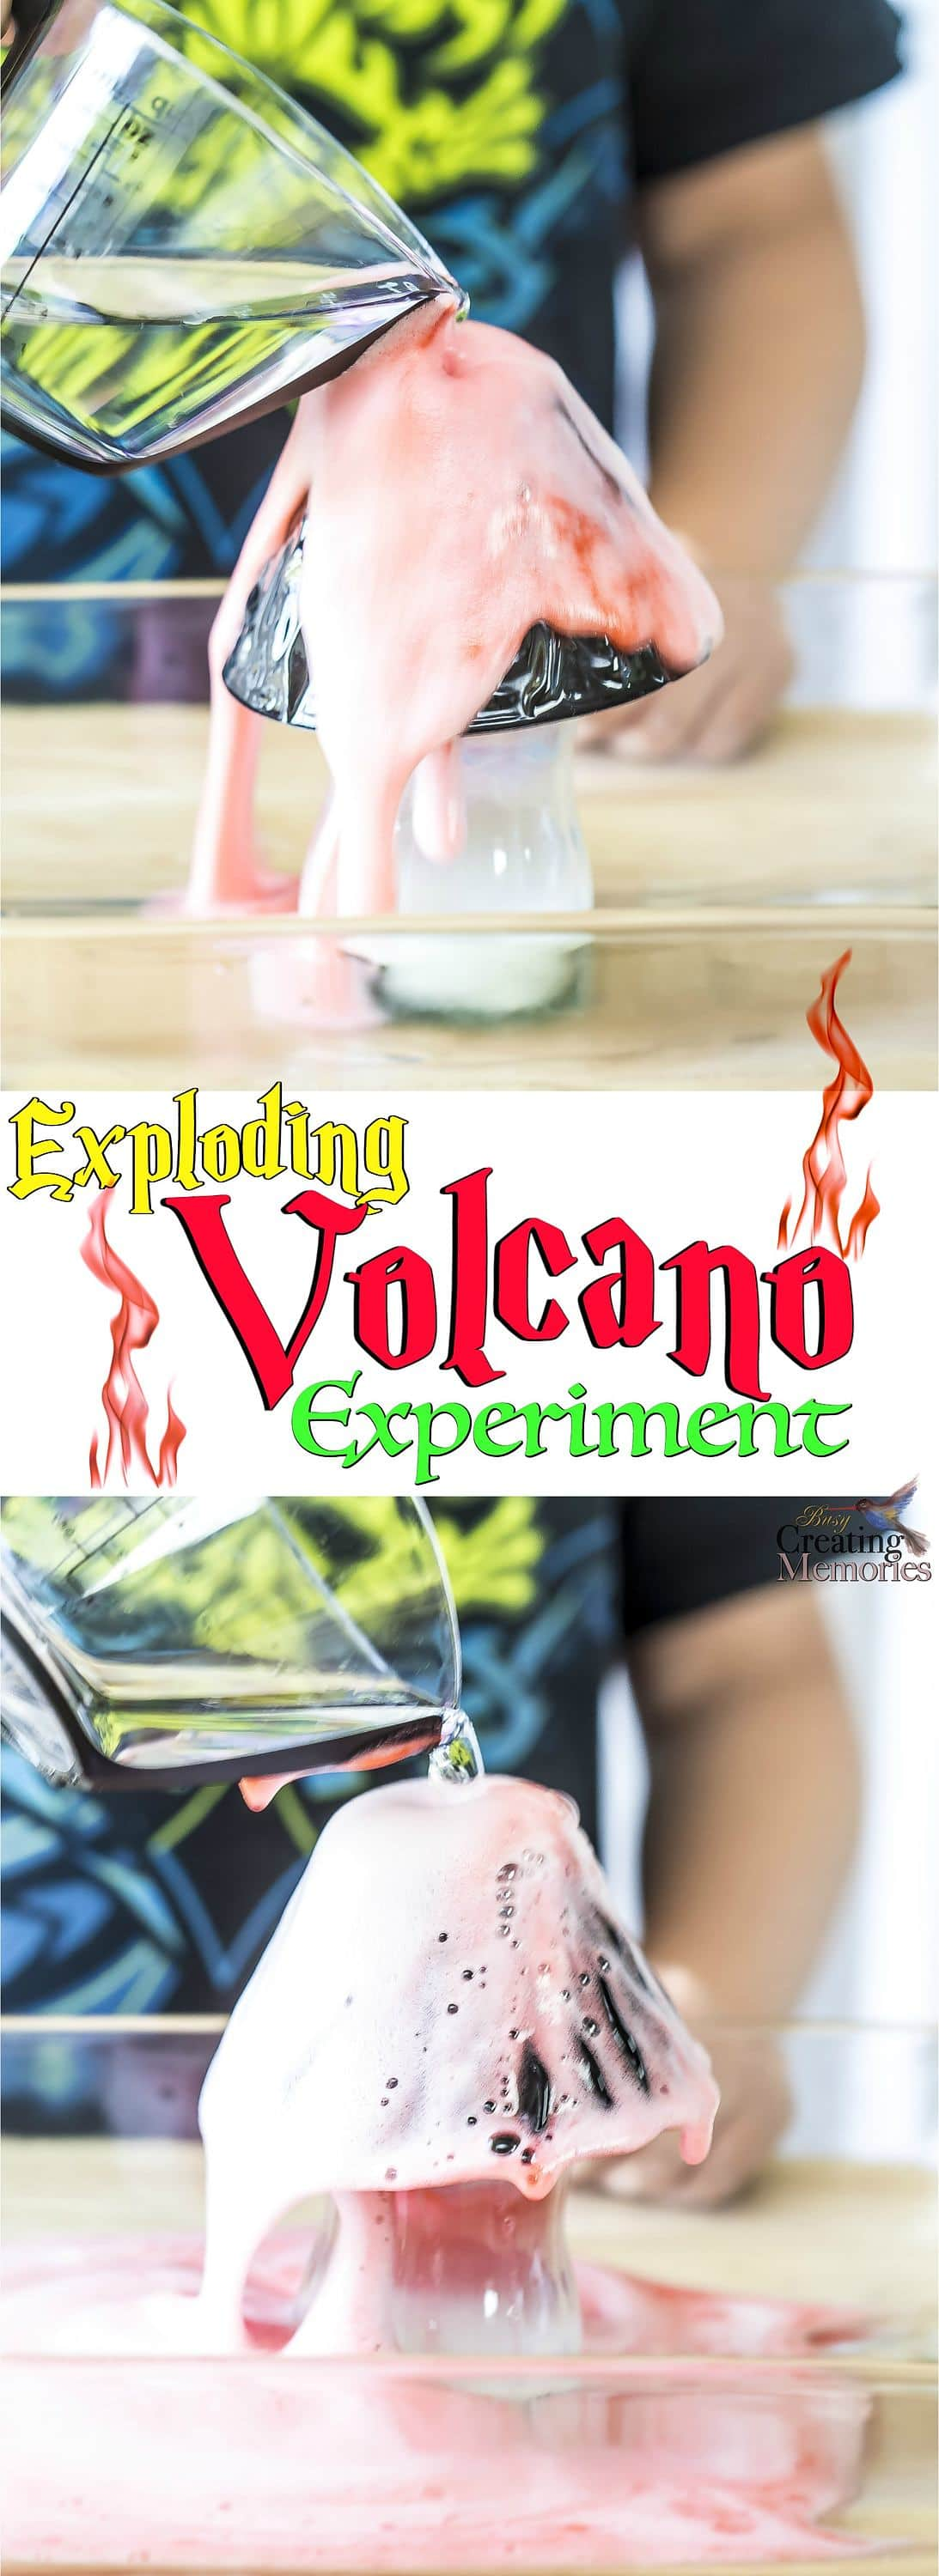 Get kids involved in hands-on activities! A very simple exploding volcano experiment that teaches kids about science and chemical reactions. All while they have fun watching a reaction made from simple household ingredients!